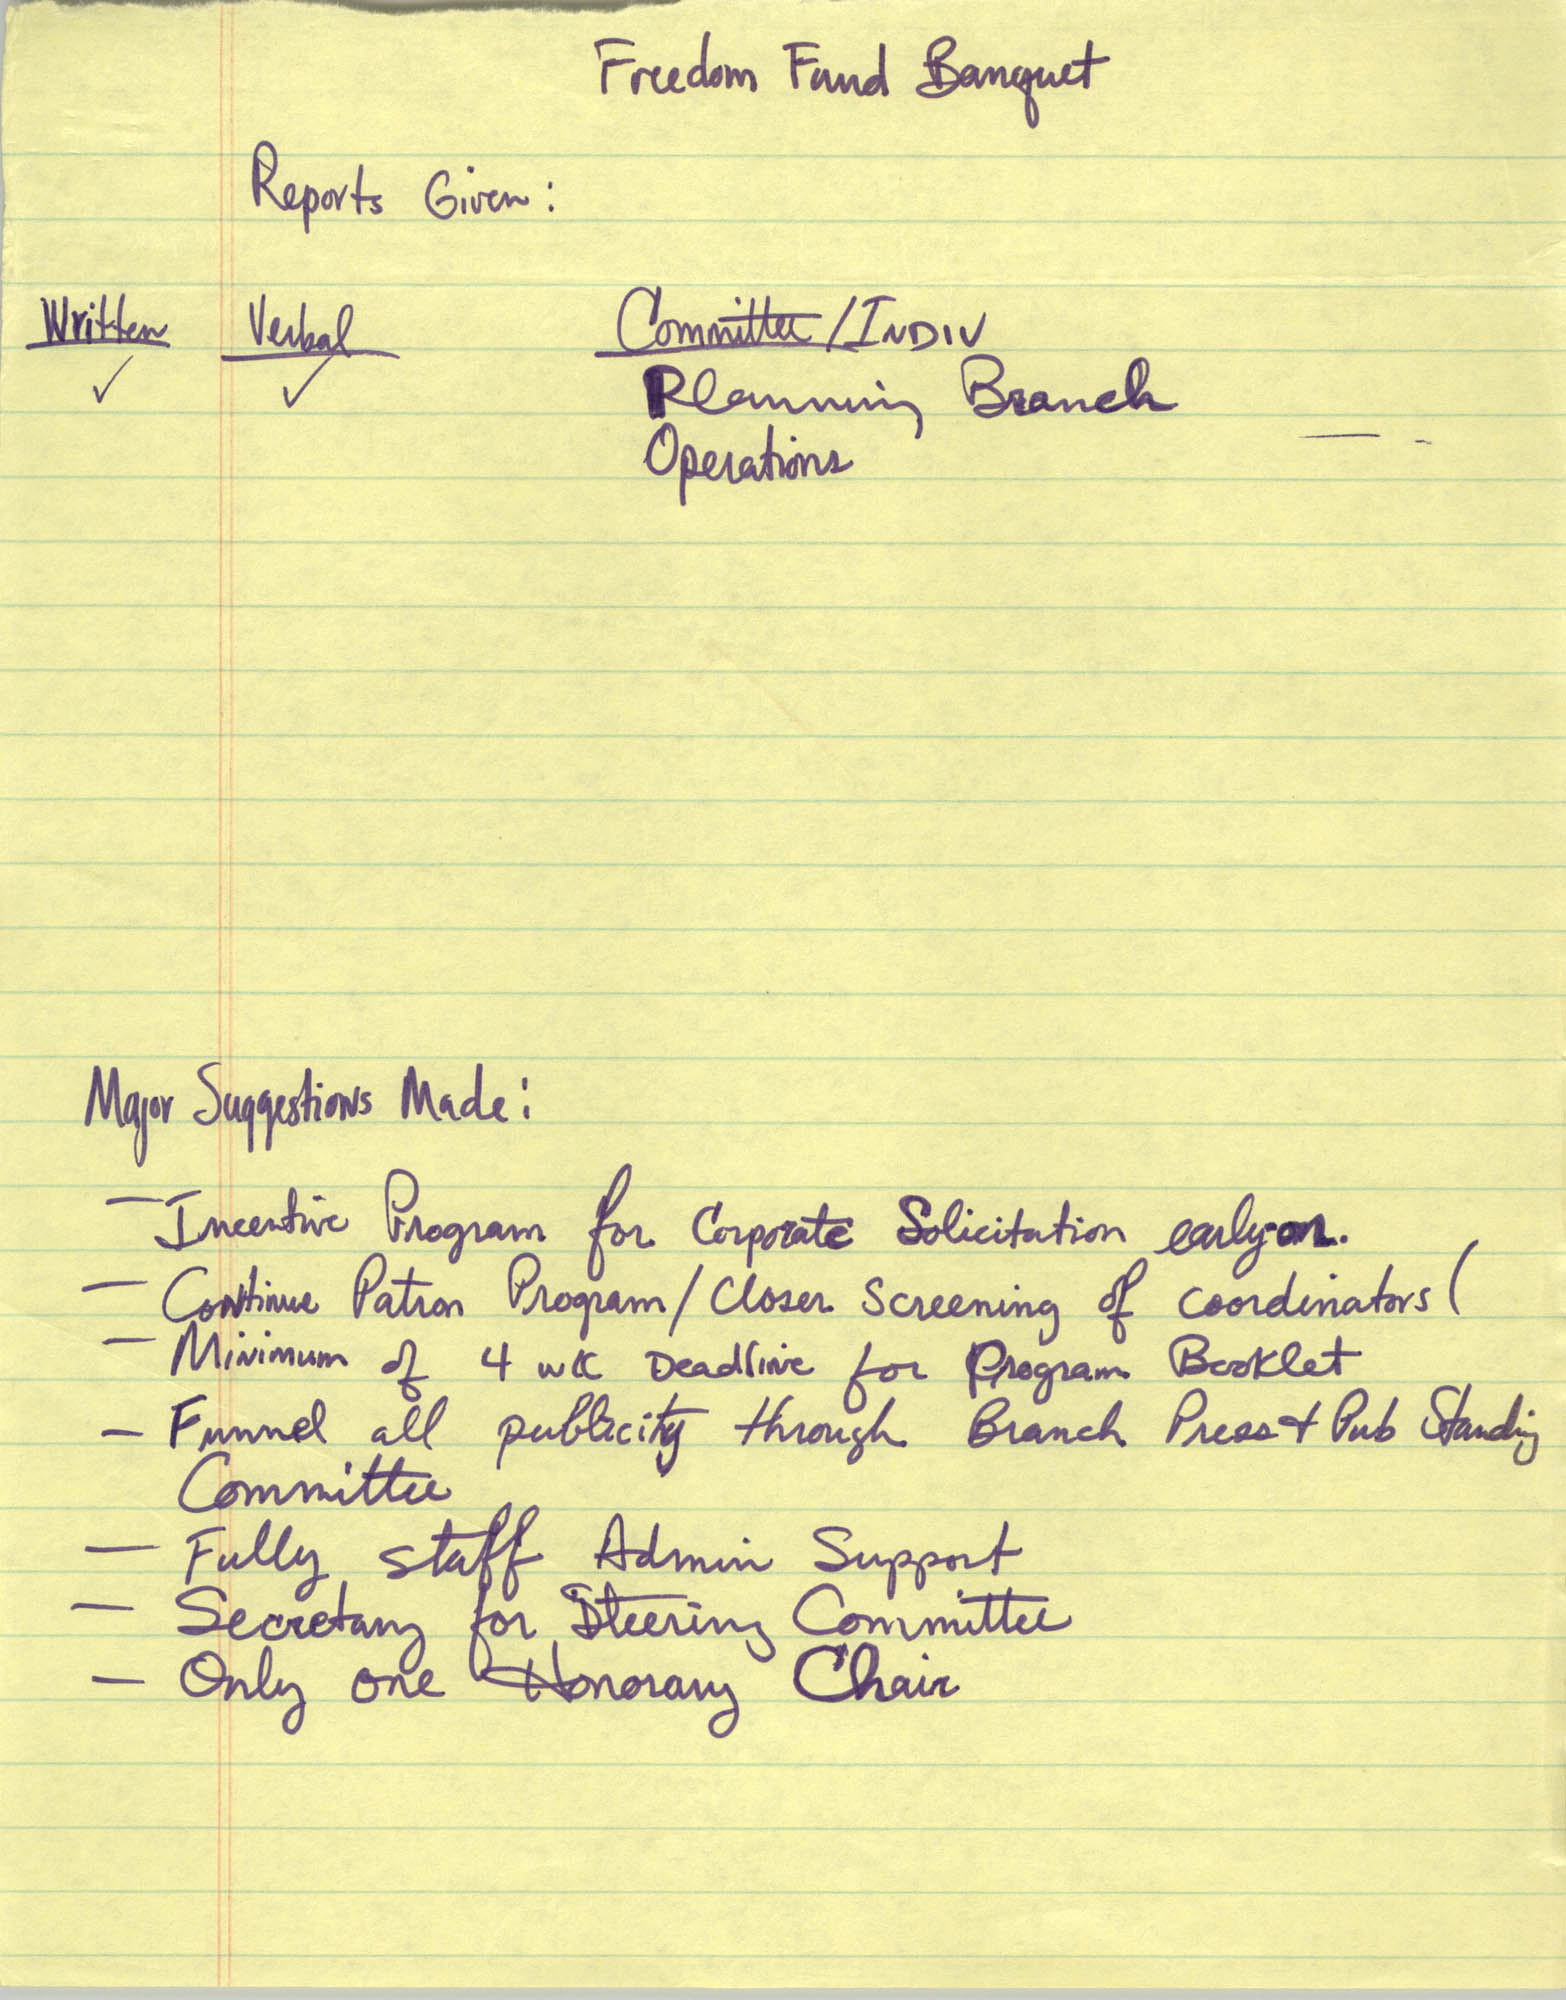 Handwritten Notes, Freedom Fund Banquet Report